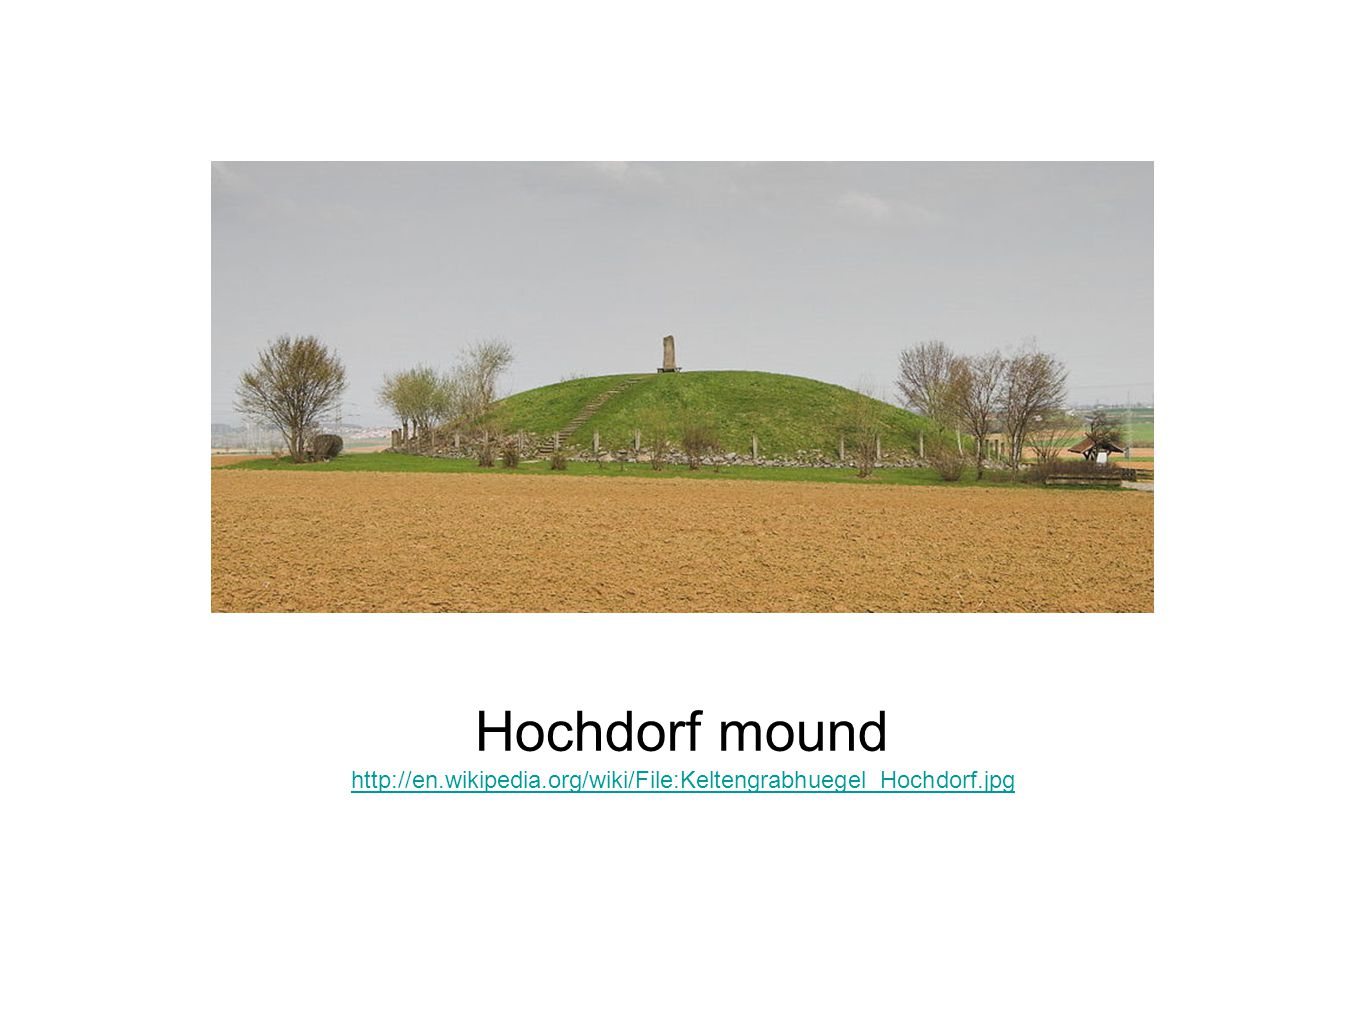 Hochdorf mound was investigated in 1977.